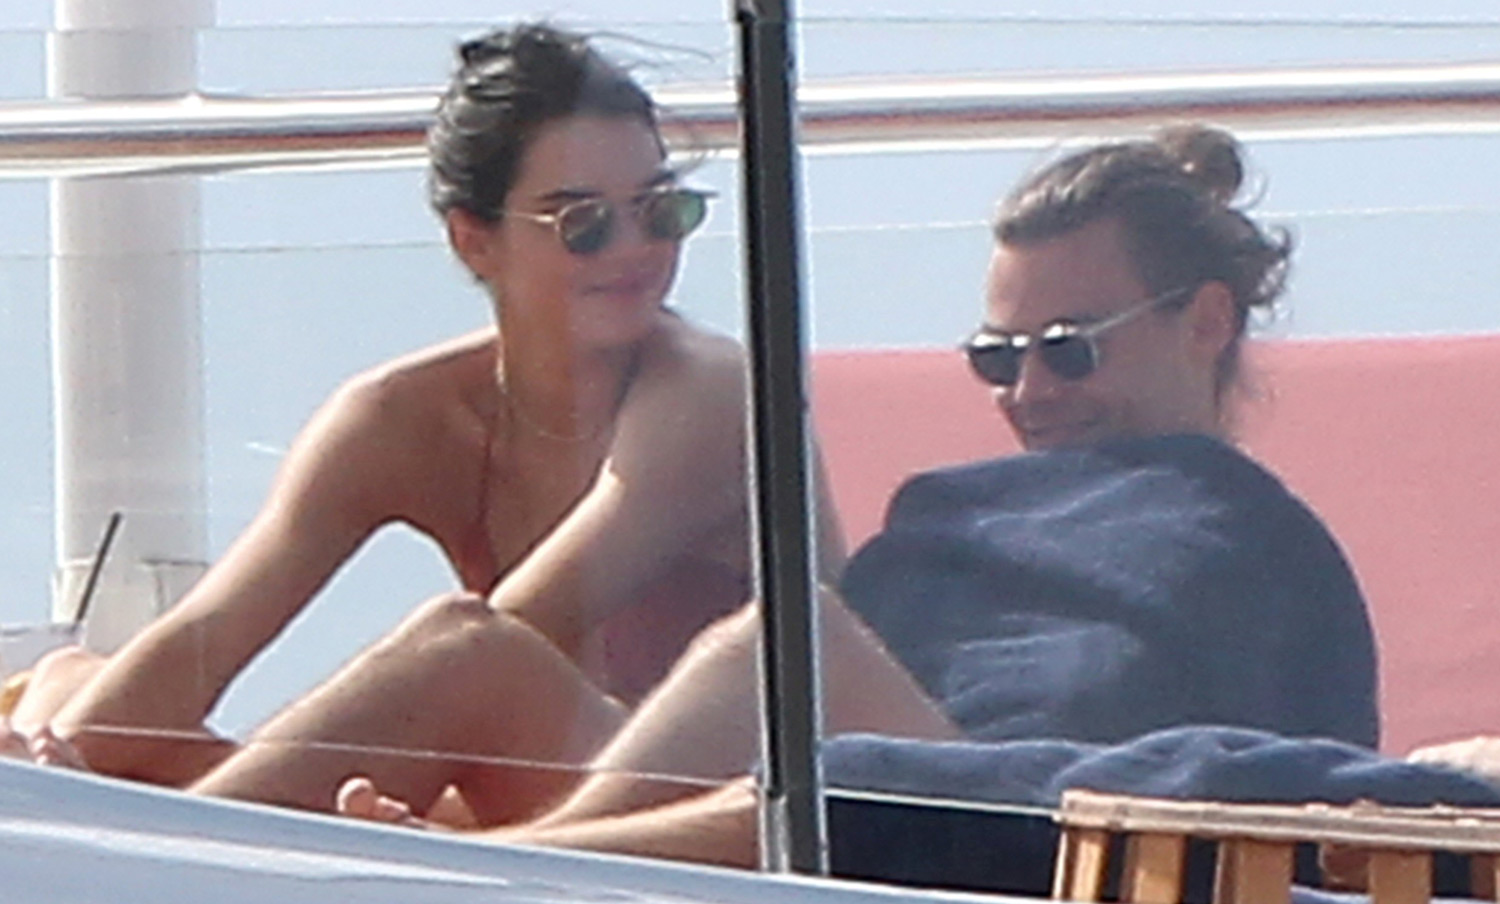 Private Photos of Kendall Jenner and Harry Styles Flood the Internet in Latest Celebrity Hack